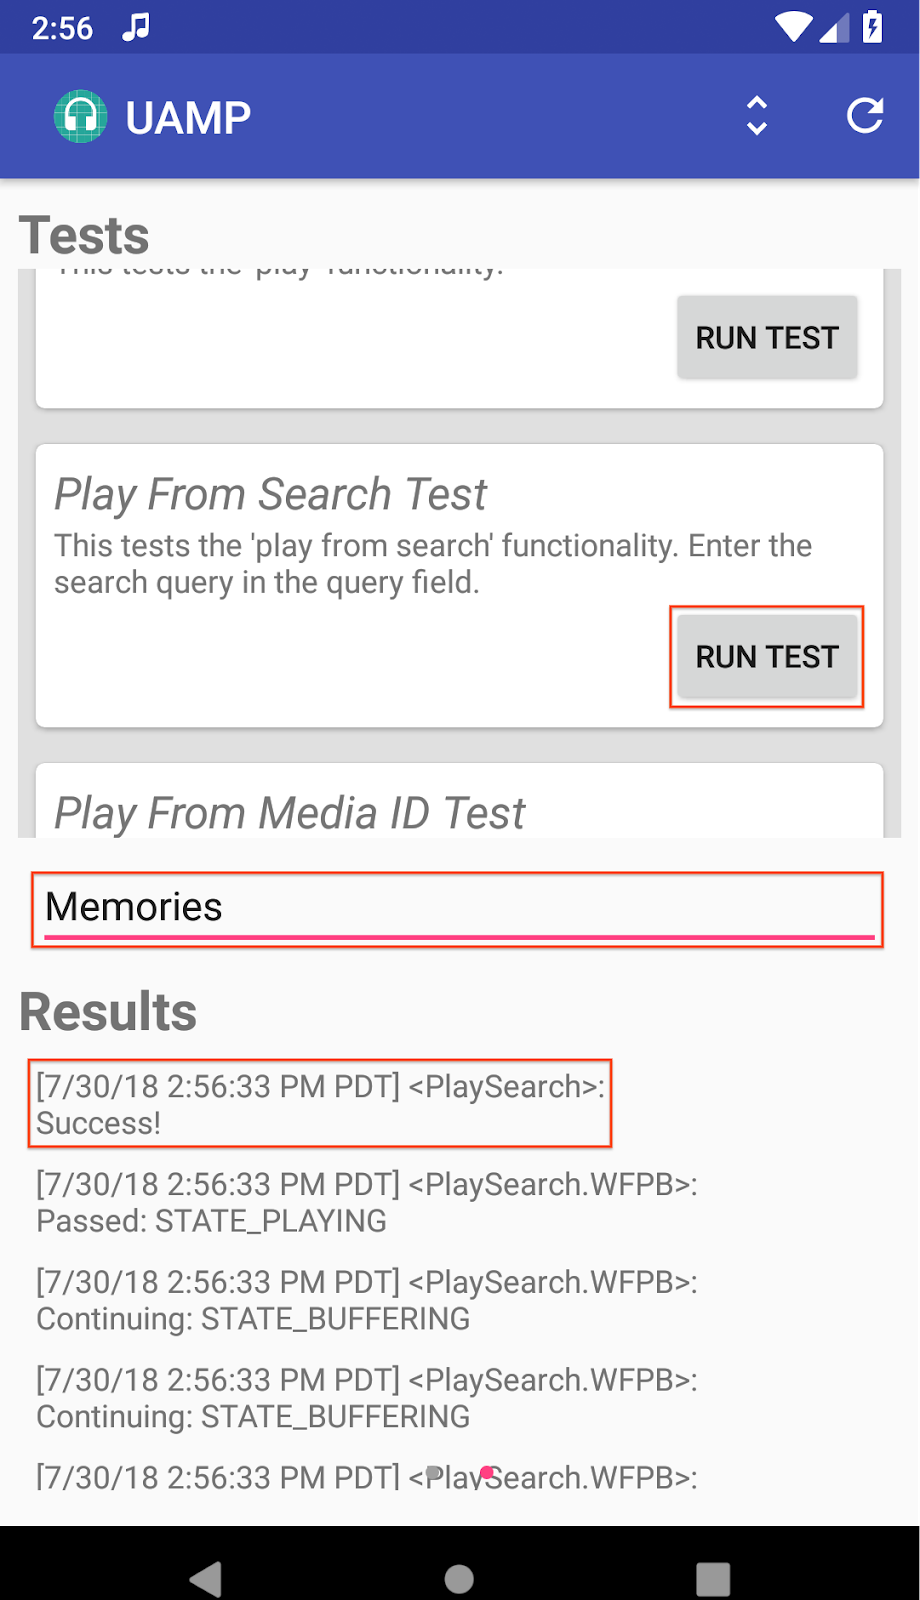 MCT Screenshot of the right screen in the Testing view for UAMP; the Play From Search test was run with the query 'Memories' and ended successfully.